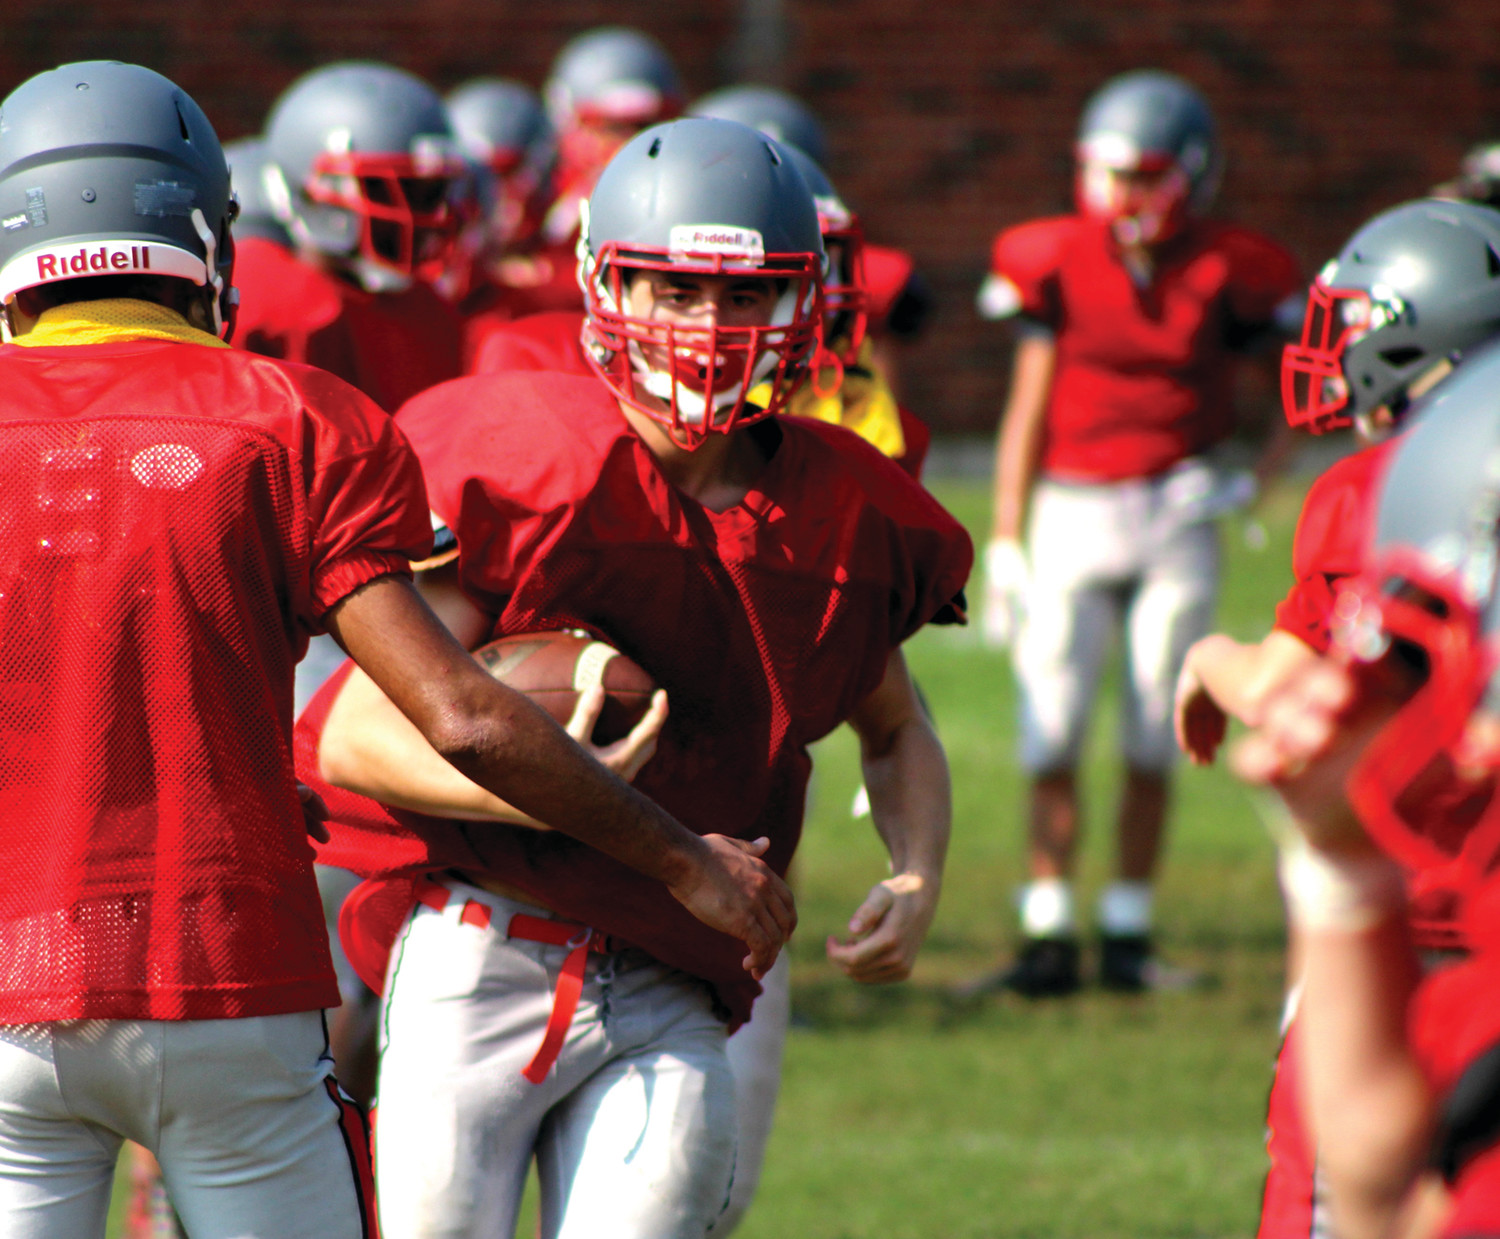 COUNTDOWN TO KICKOFF: After snapping a 10-year long playoff drought in 2017, the Cranston West football team beat the odds and qualified for the postseason. Despite losing to rival Cranston East in the opening round of the playoffs, the Falcons are confident heading into the 2018 regular season, and are hungry to build off of last year's success. Pictured are West football players running through drills during a practice last week at Cranston West.